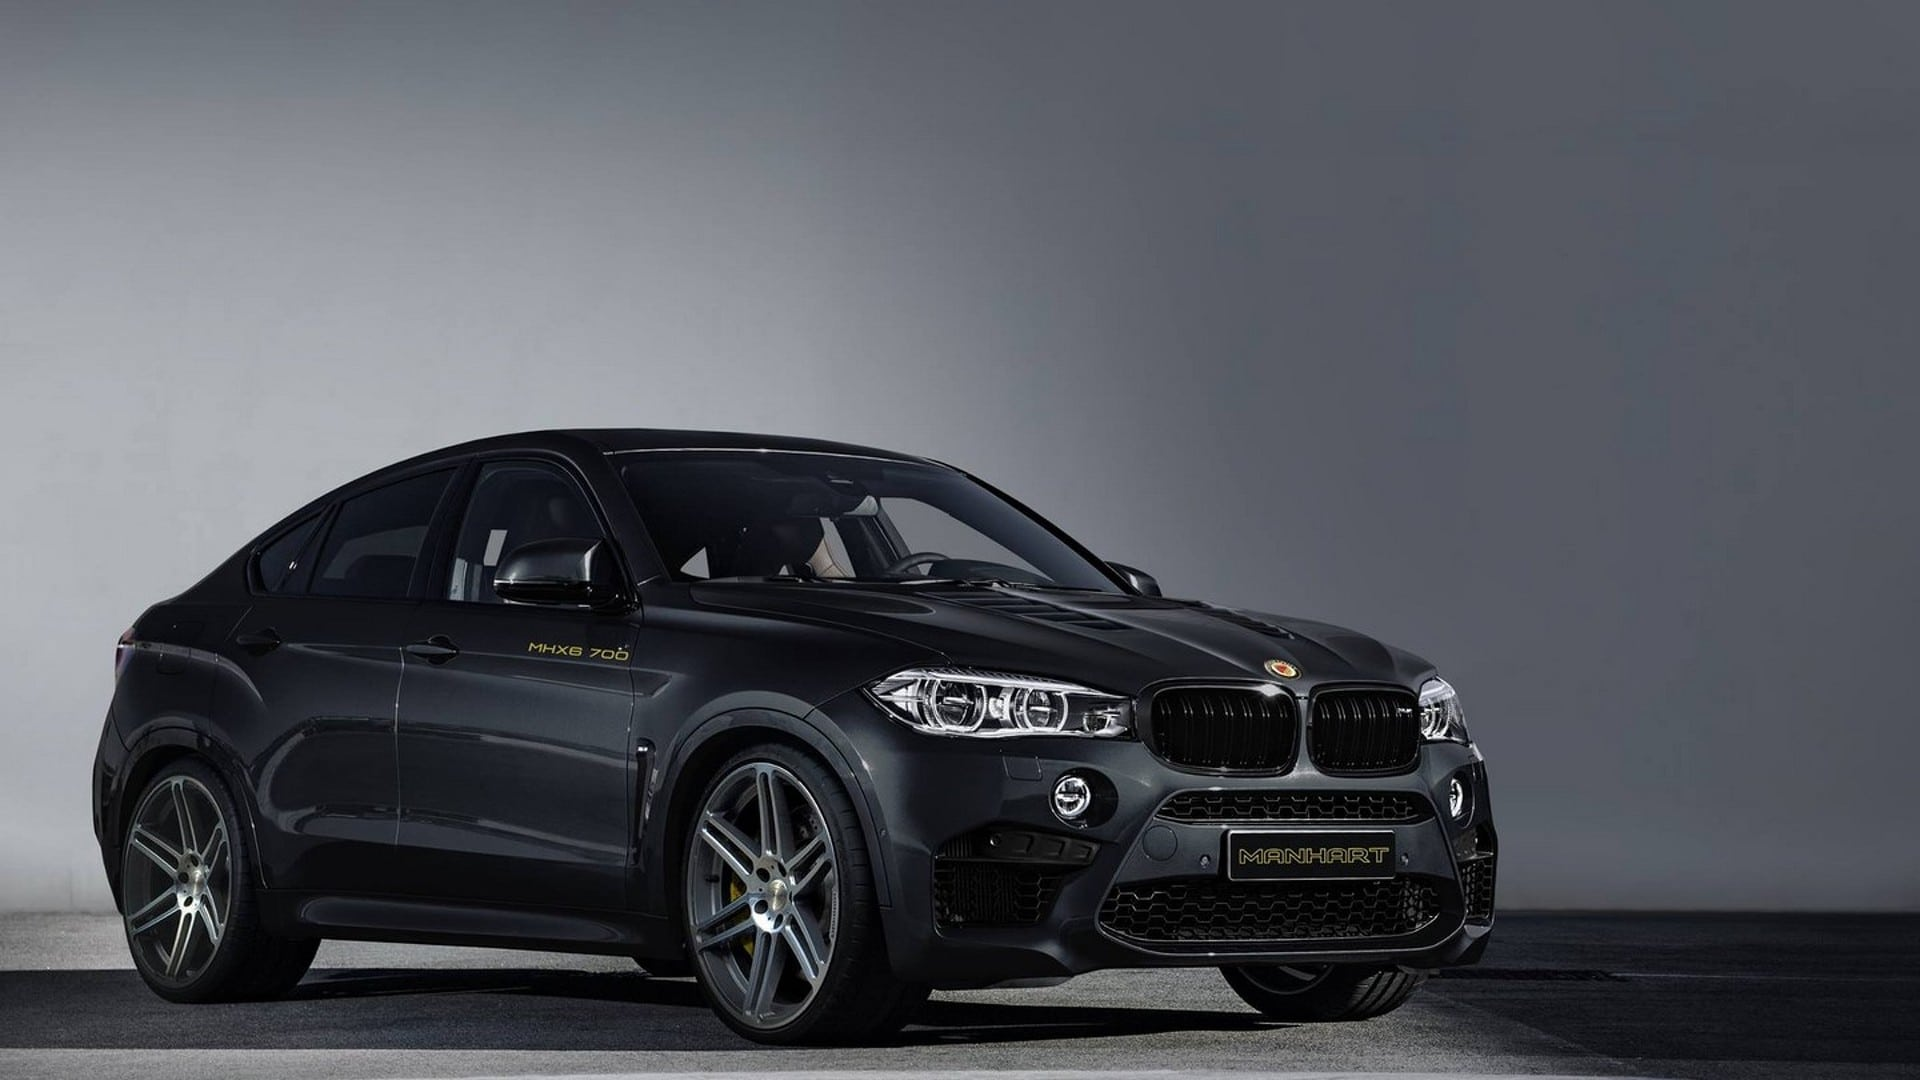 manhart dials bmw x6 m to 700 hp Exterior